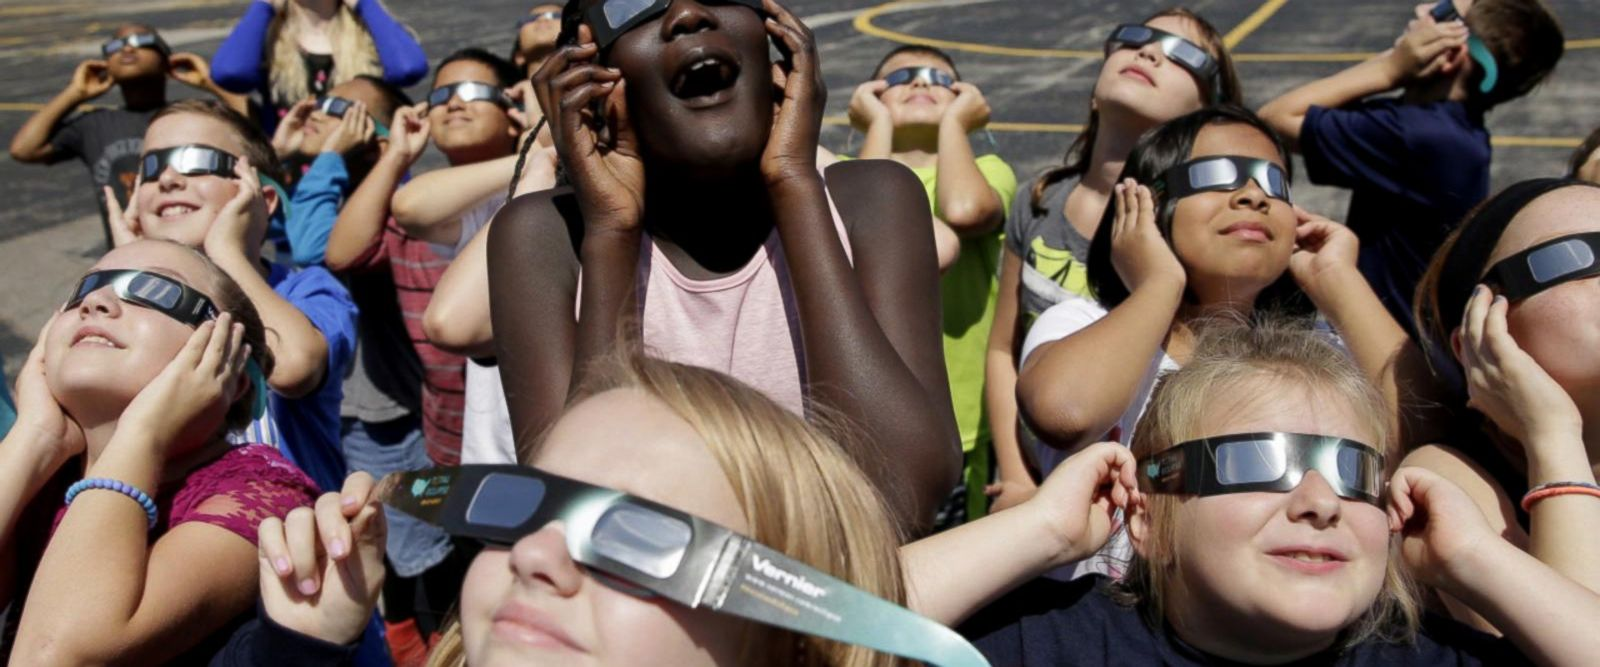 VIDEO: Solar eclipse brings Americans together